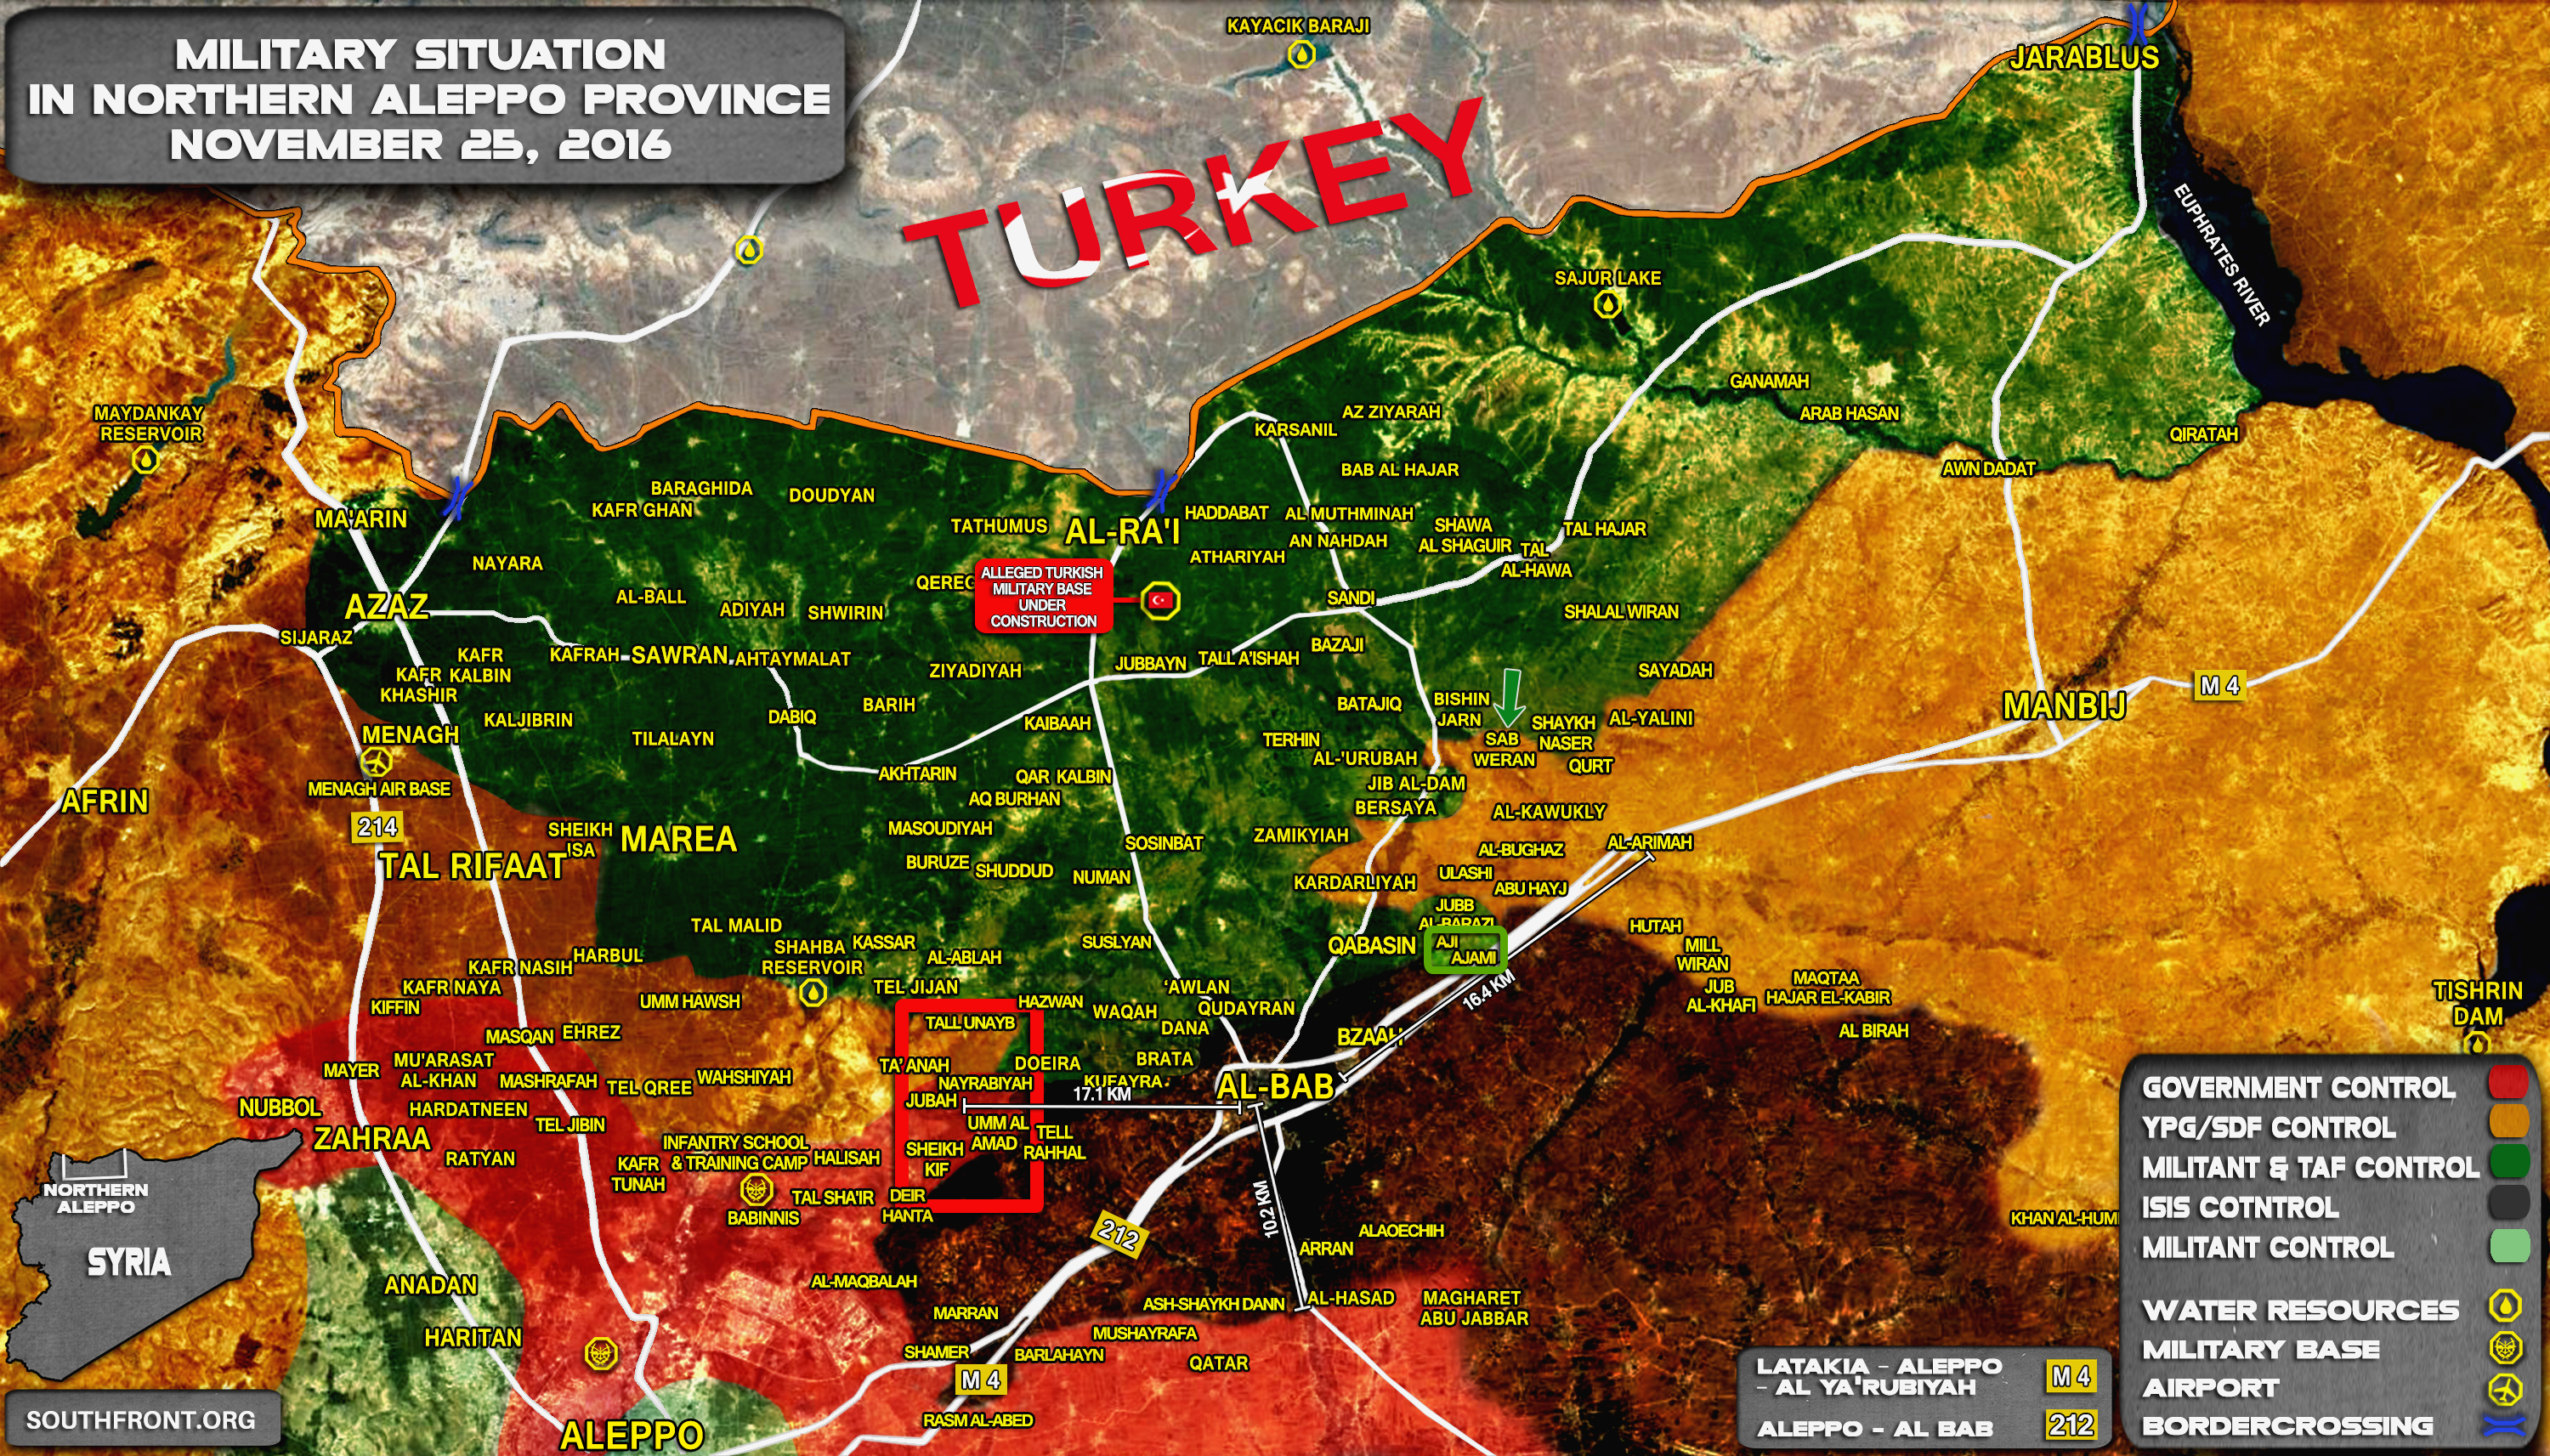 Turkey-led Forces Advance against Kurdish YPG, Seize 2 Villages in Aleppo Province